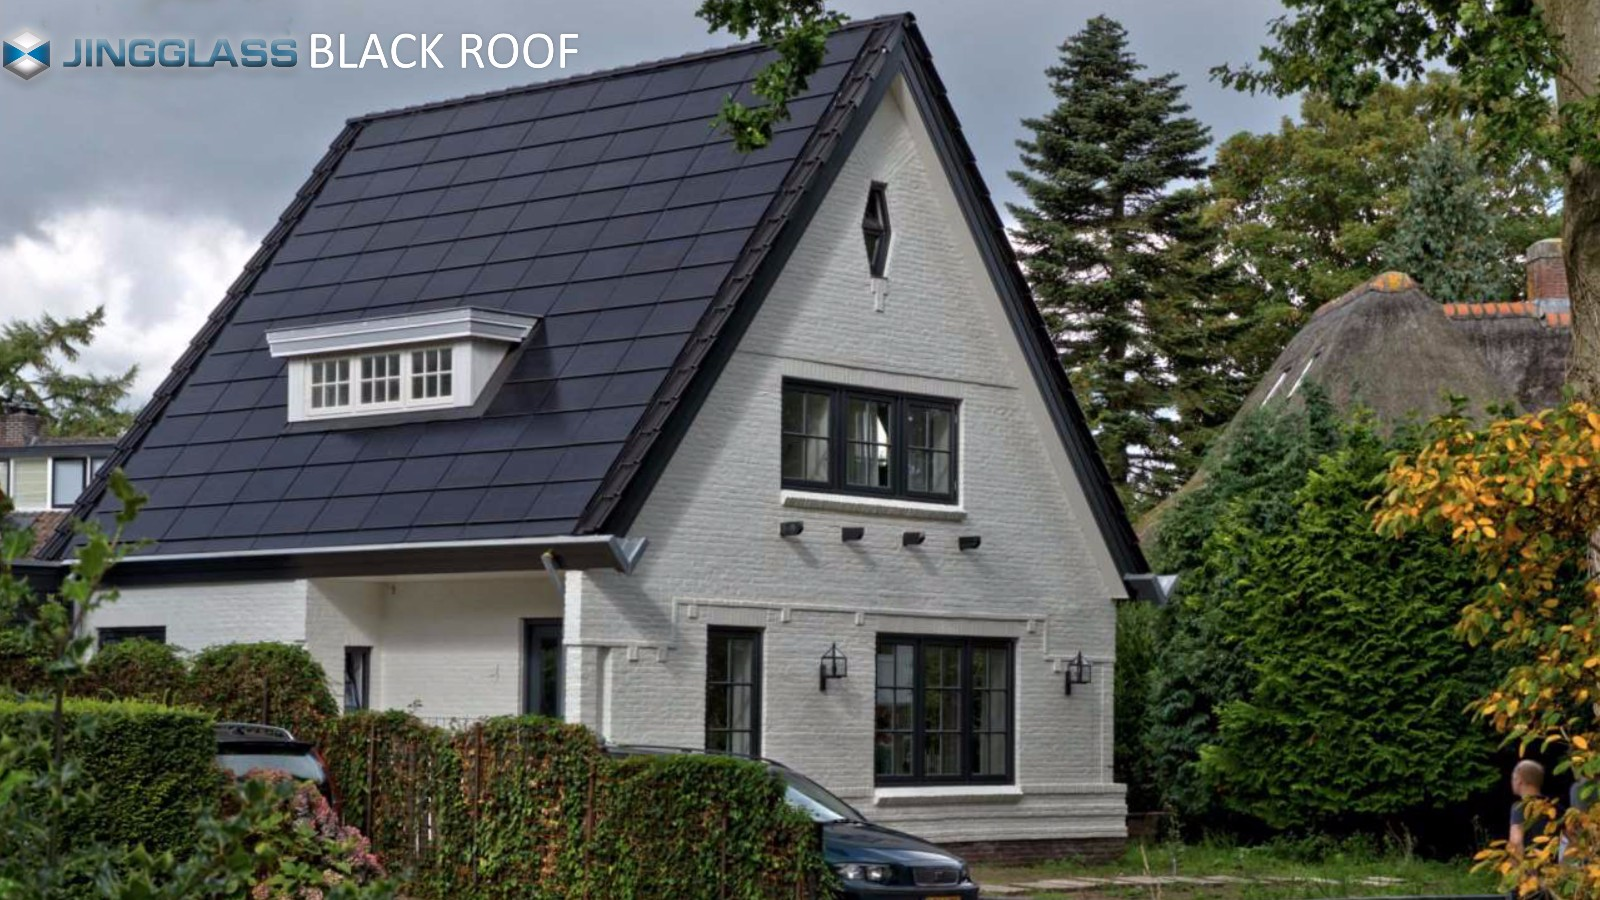 Block-Glass-Roof-of-JINGGLASS.jpg